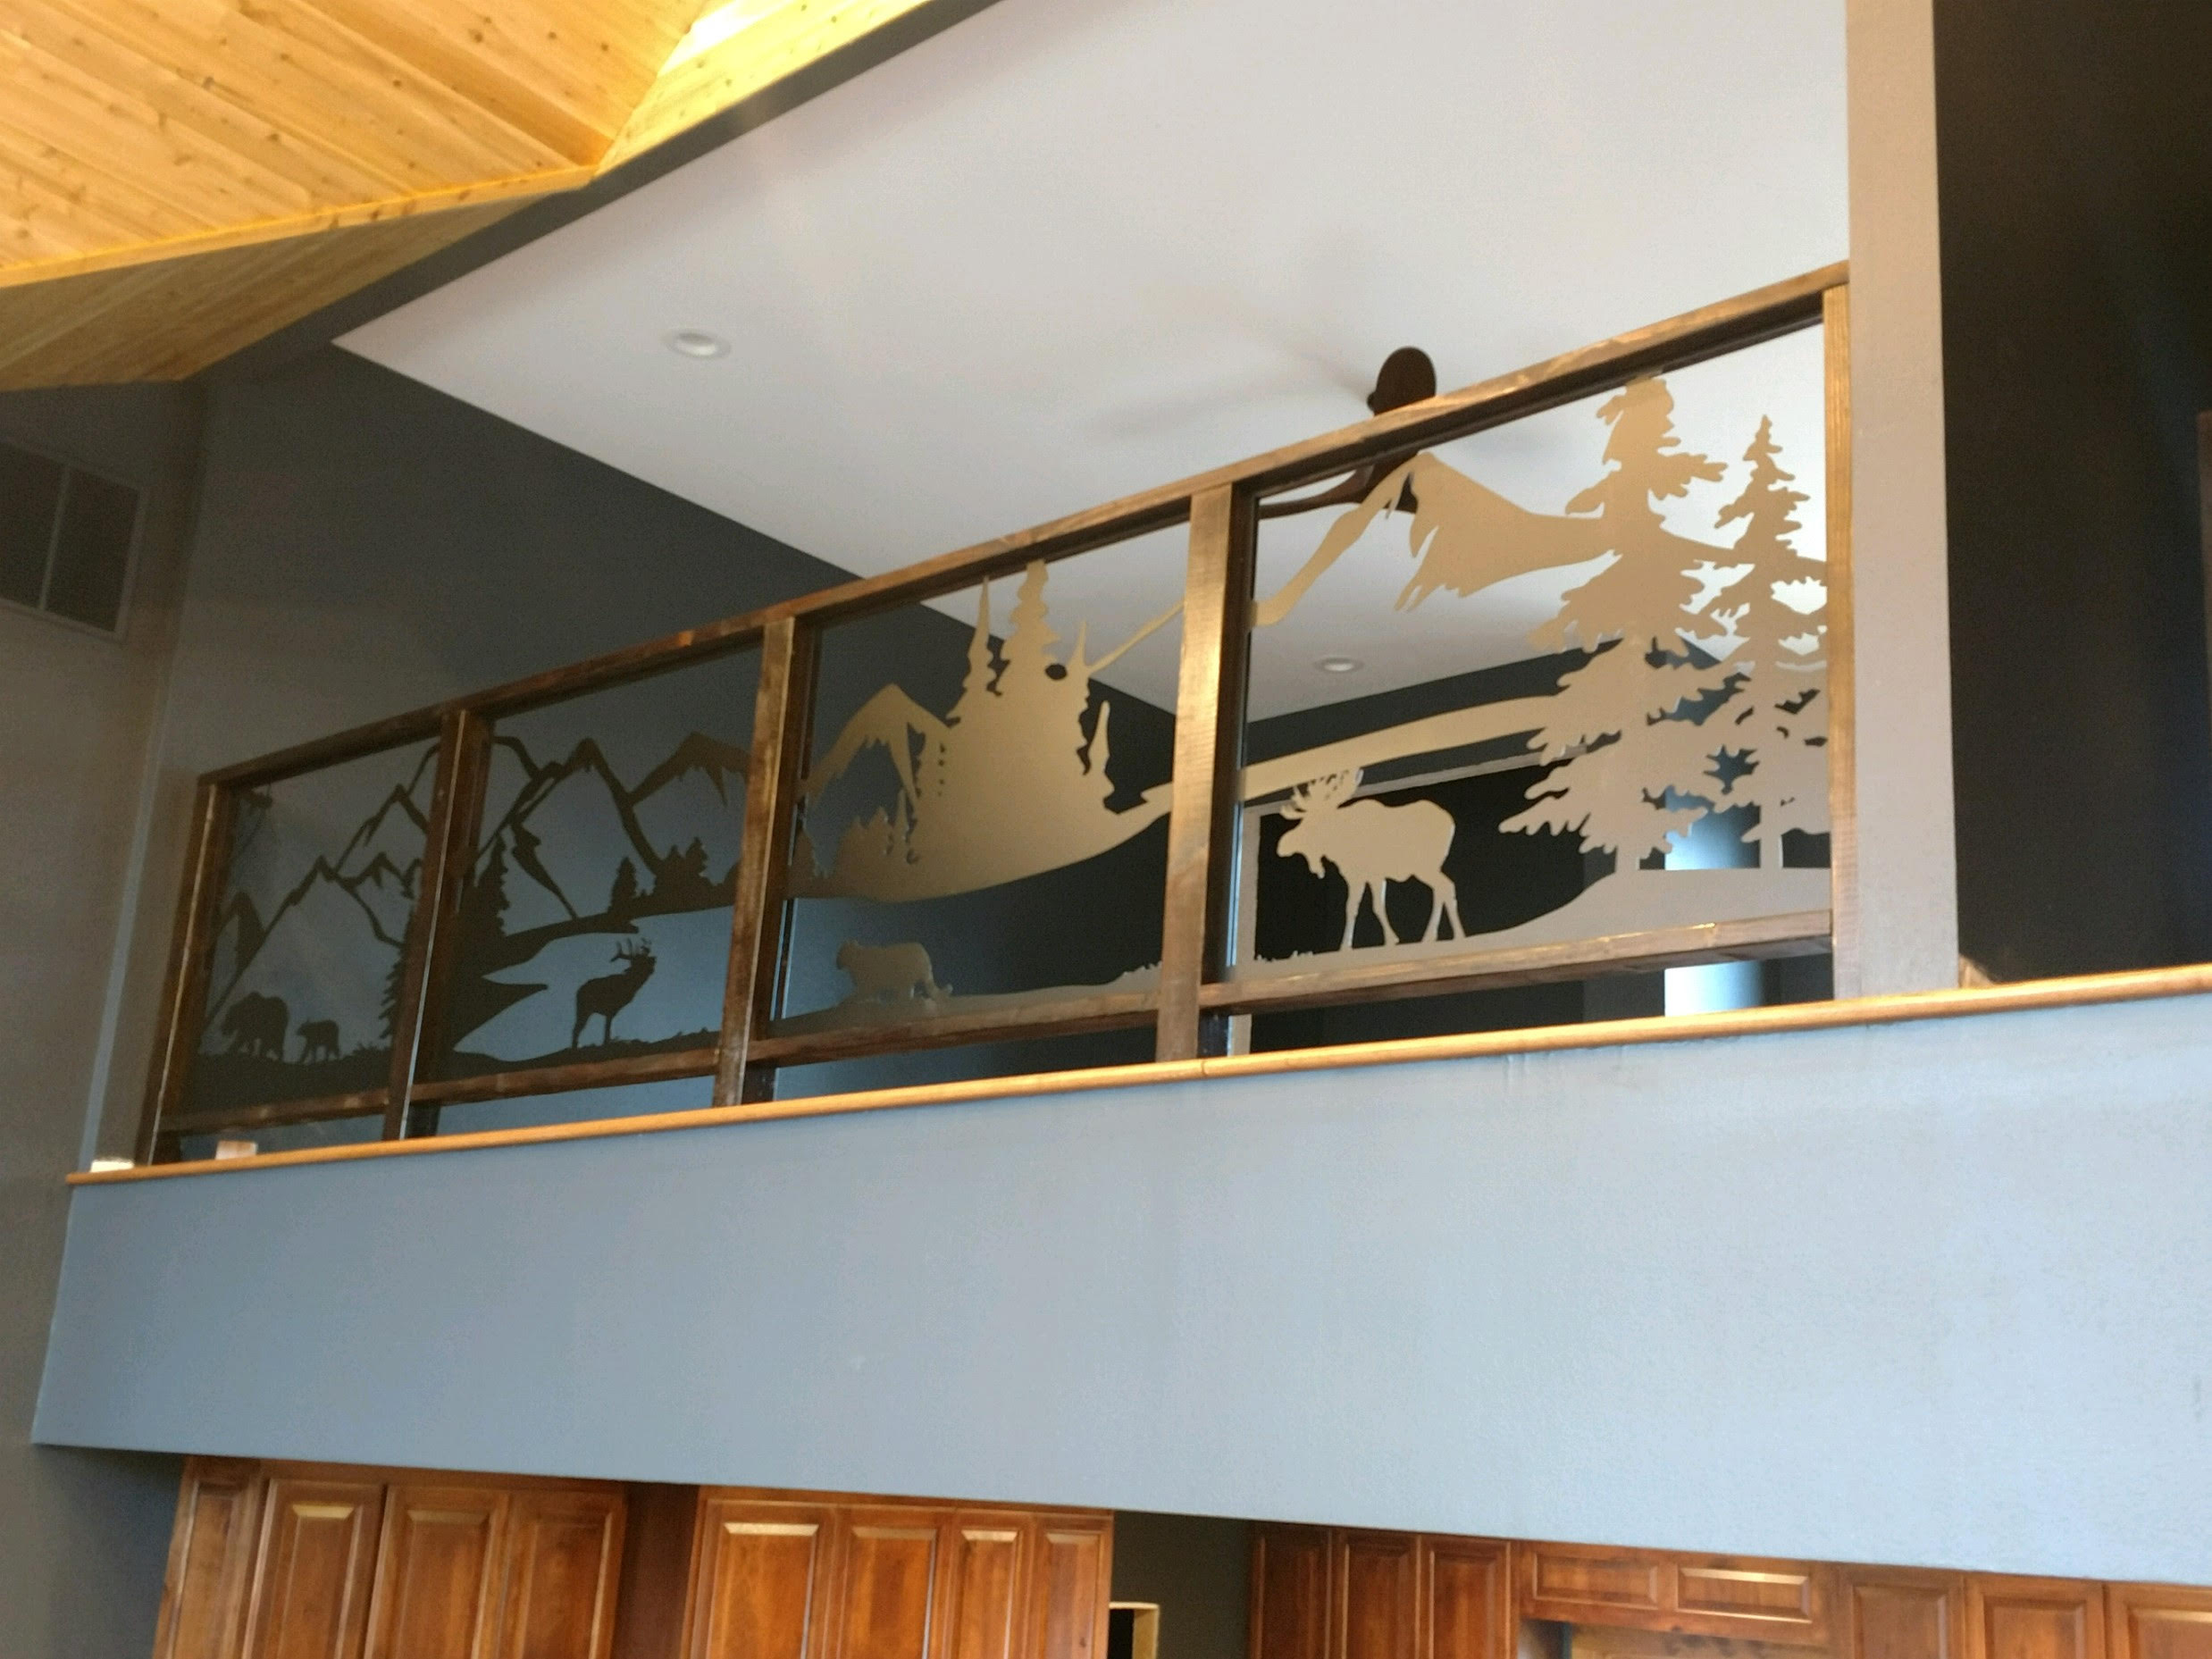 CNC Scenery Panels for Handrail-stair-view-balcony.jpg